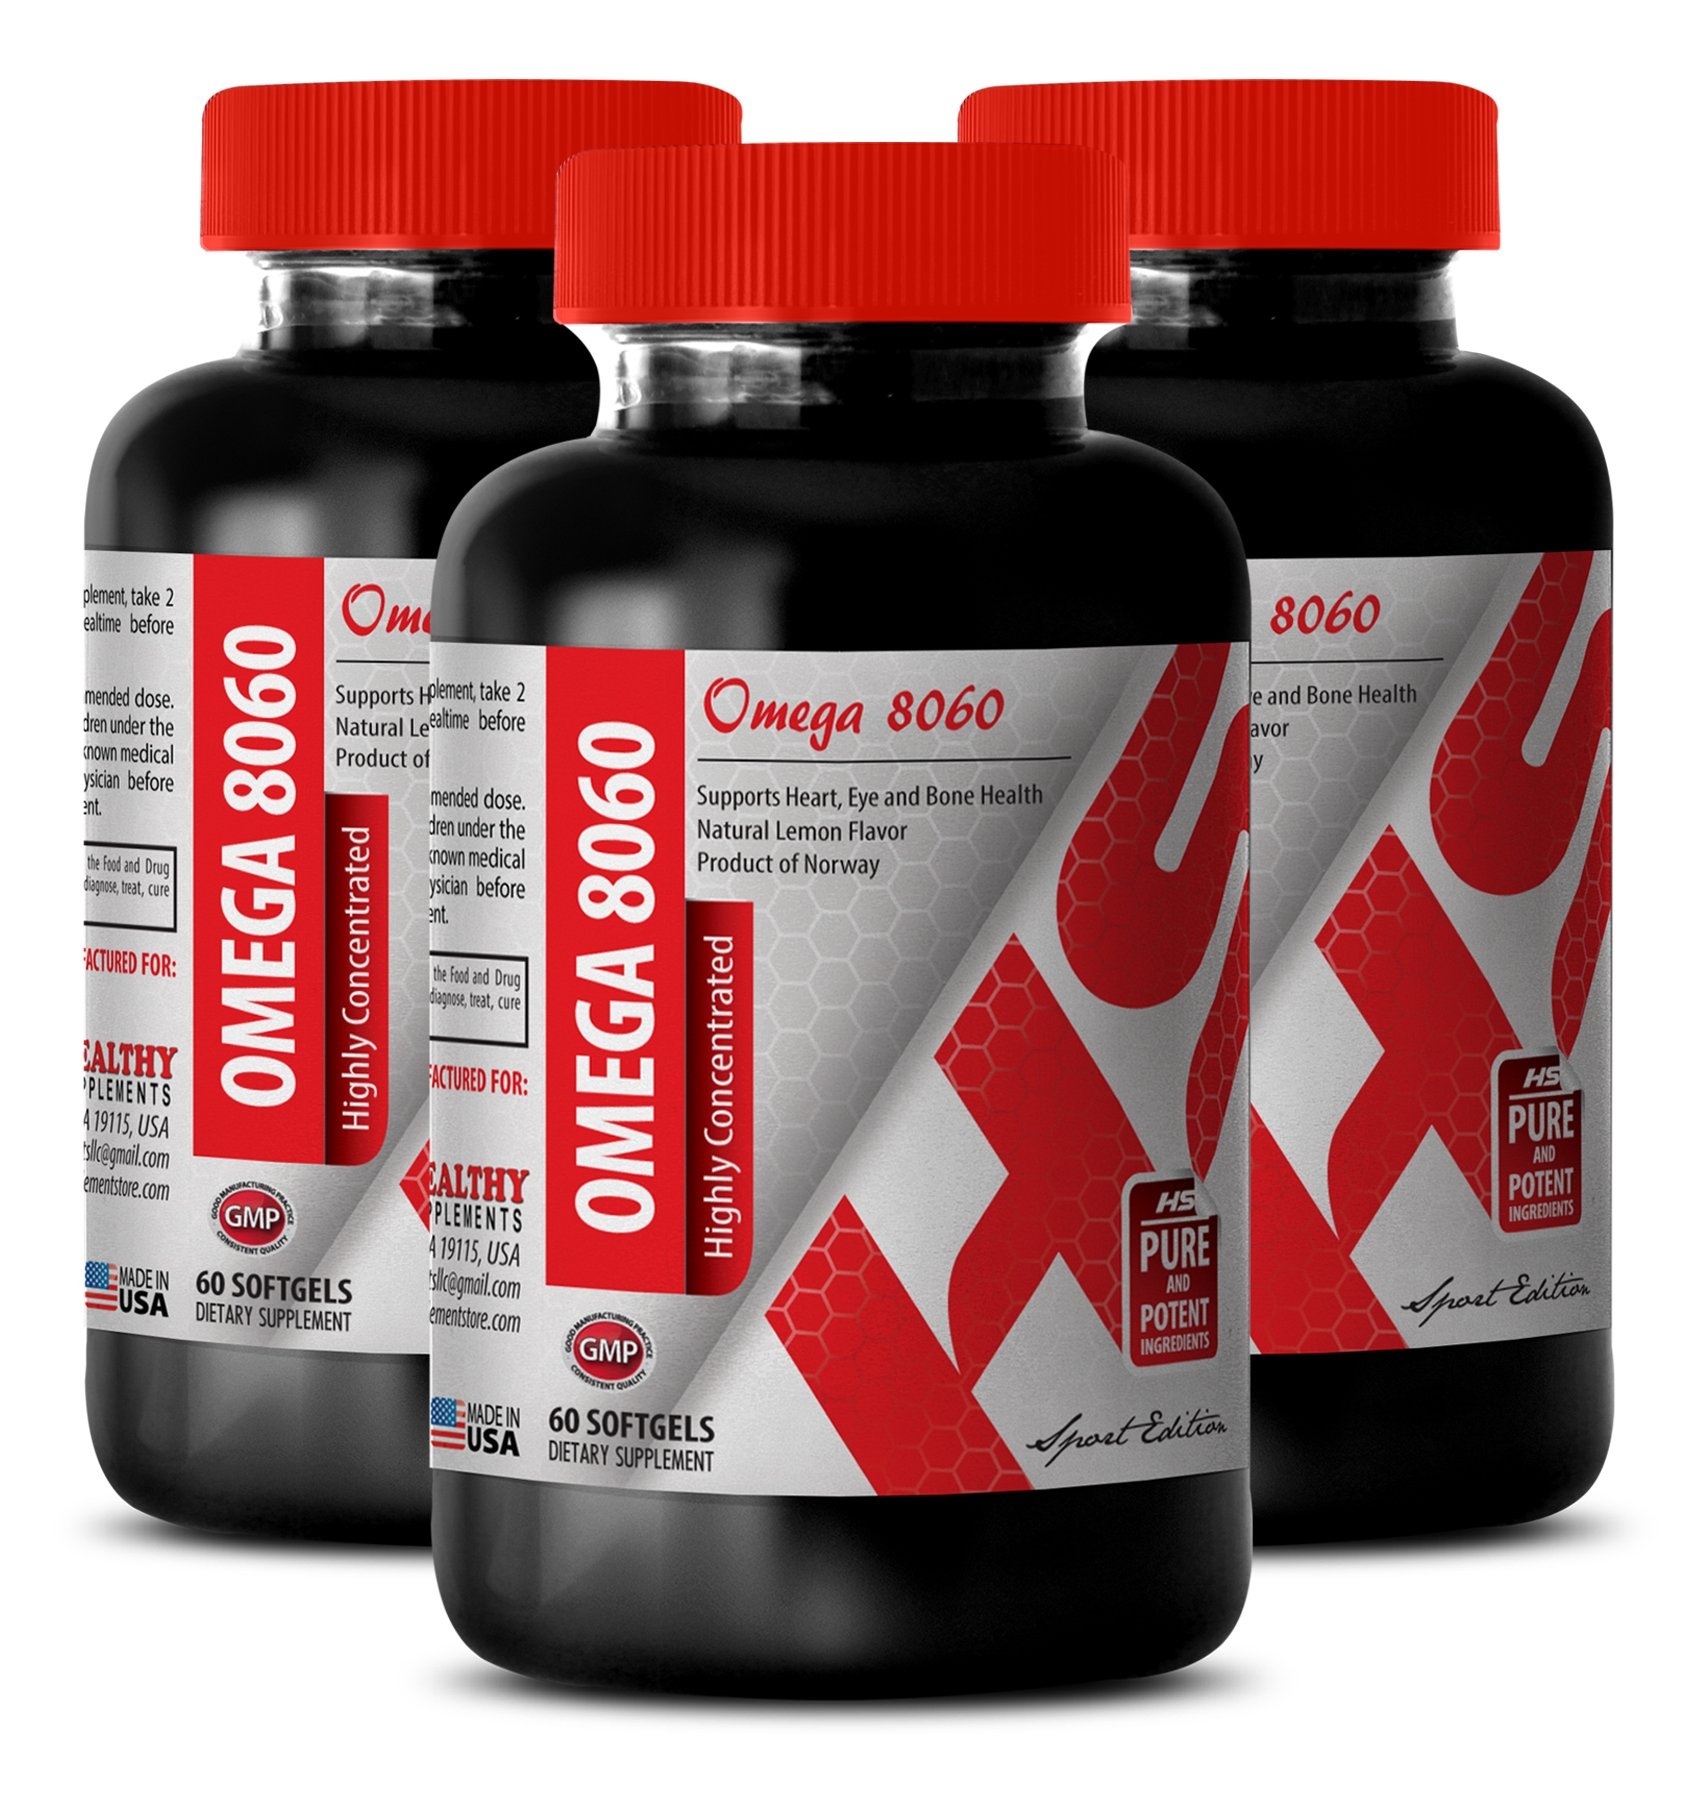 Omega 9 supplement - HIGHLY CONCENTRATED OMEGA 8060 3000 MG - help in weight loss (3 Bottles) by Healthy Supplements LLC